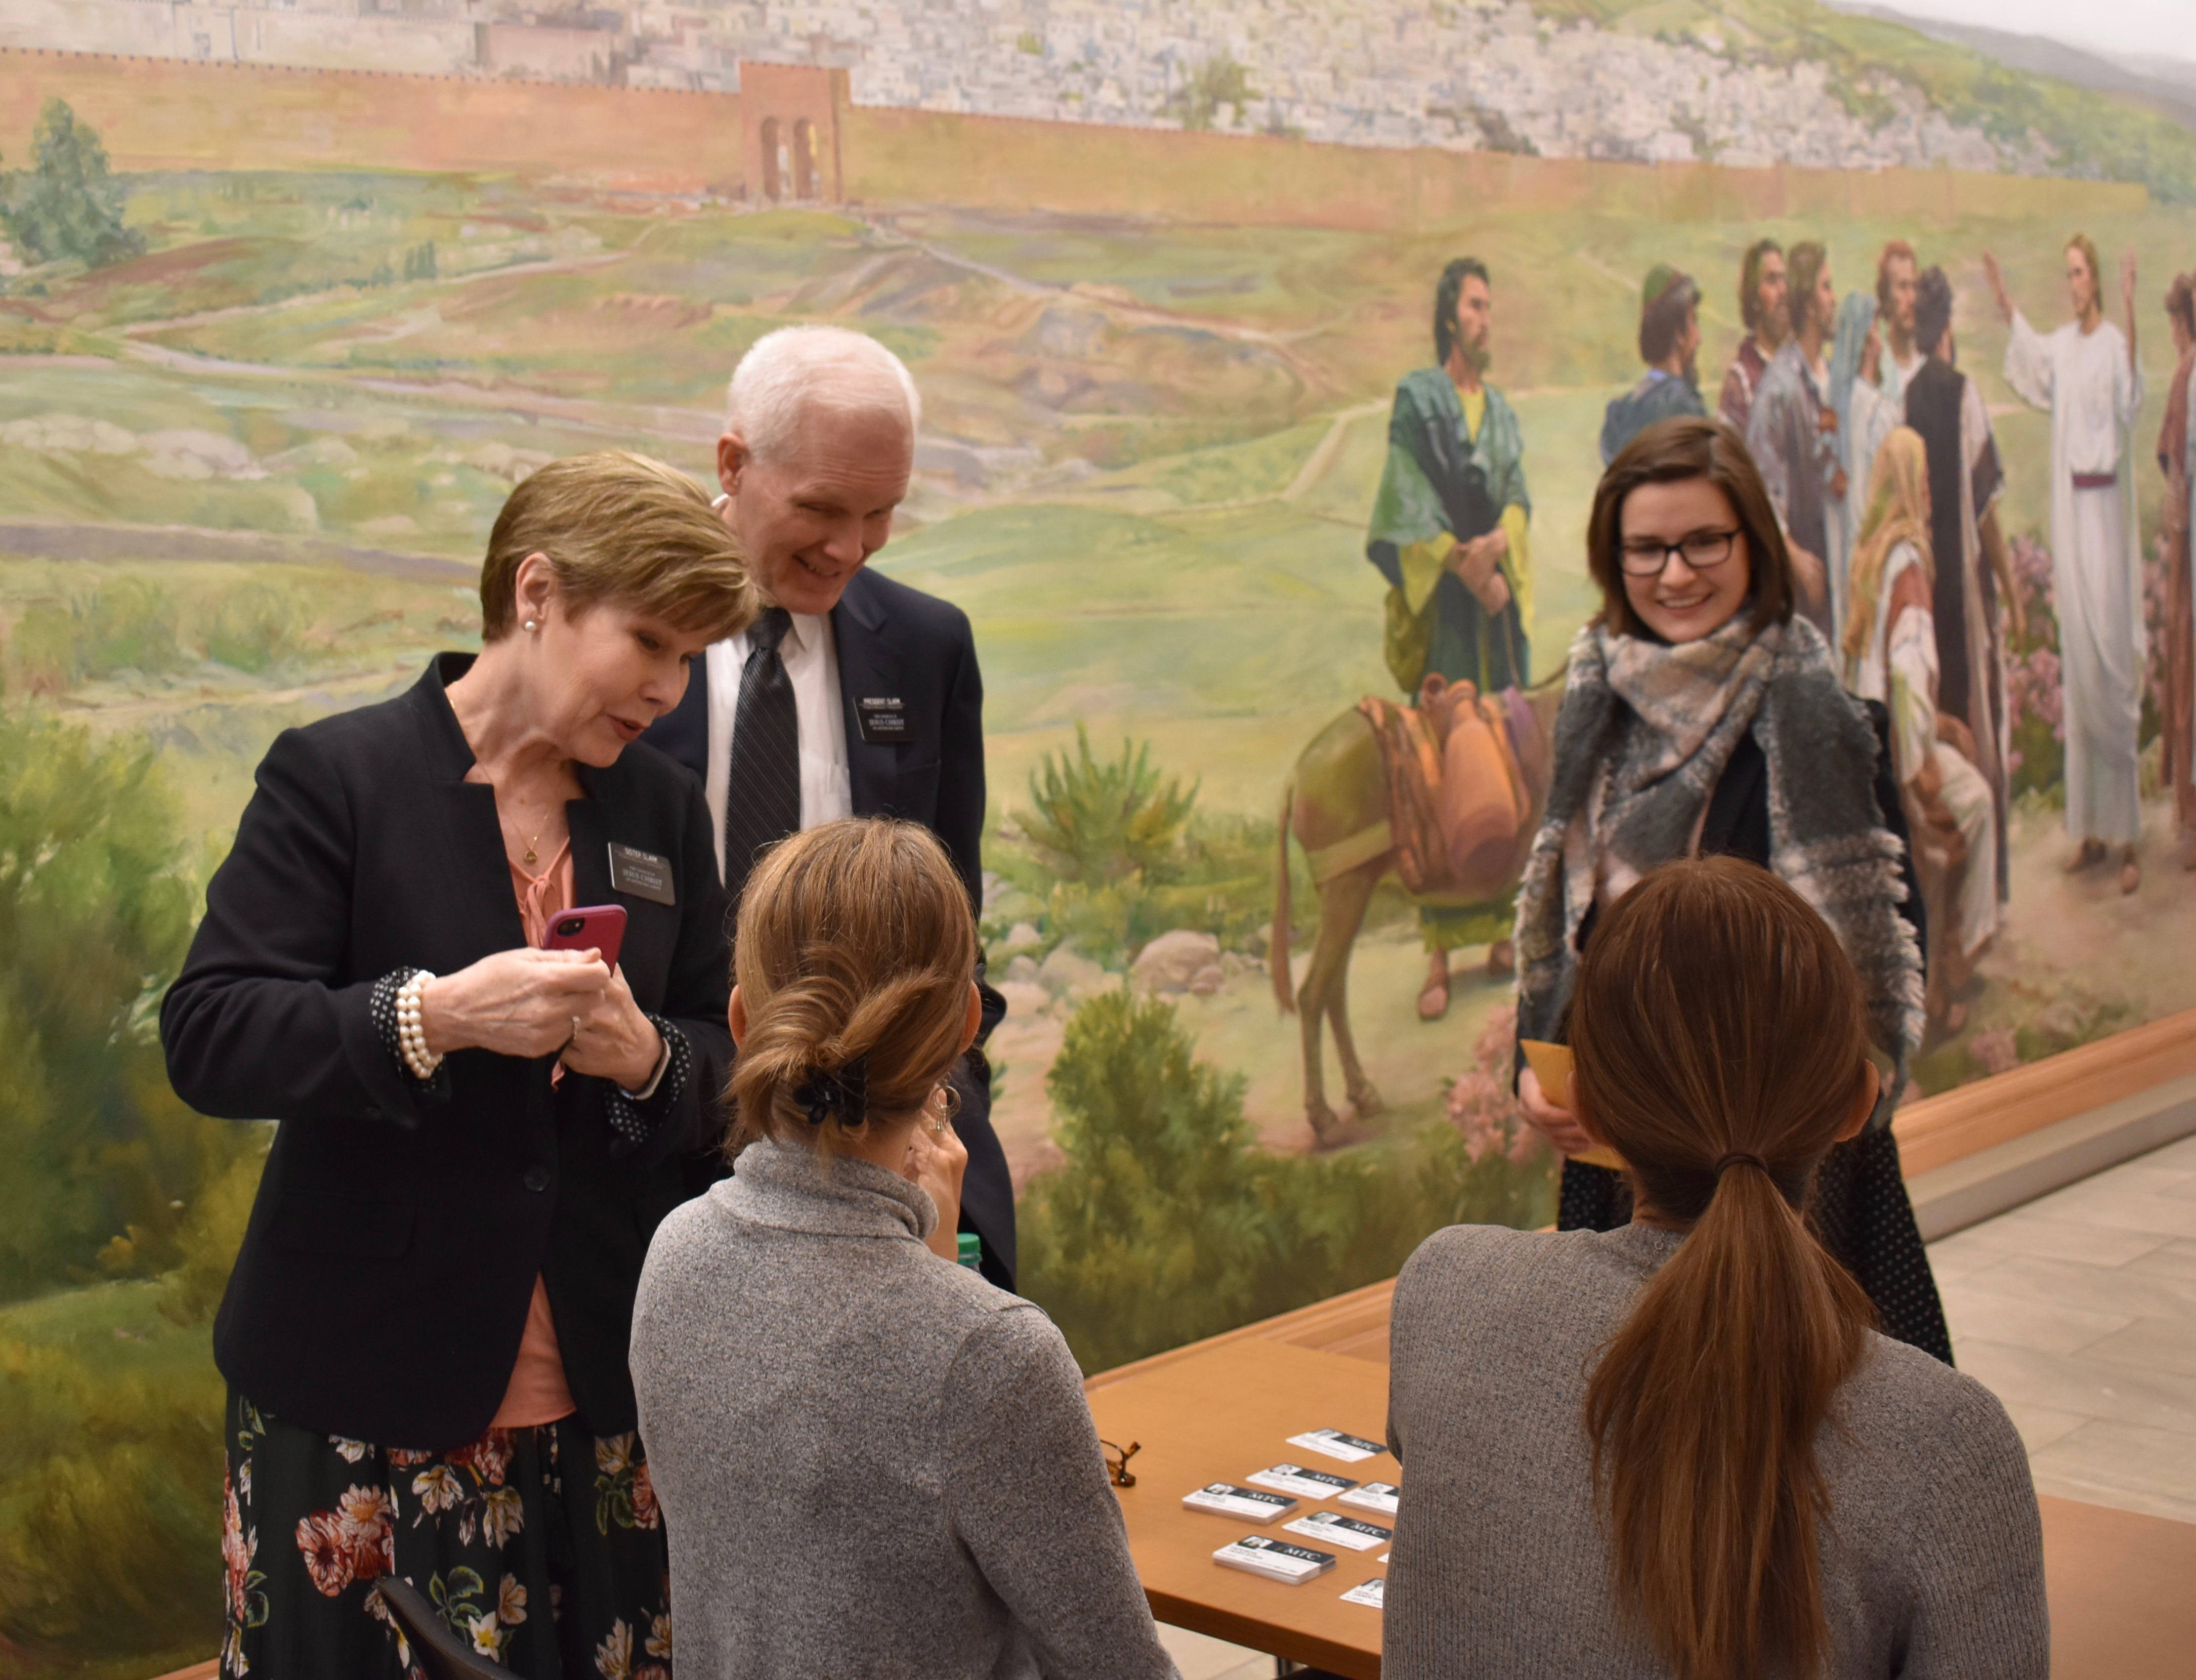 President Scott B. Clark and Sister Sandra Clark of the Philippines Missionary Training Center, pause to visit with Provo MTC volunteers helping to process arriving missionaries on Jan. 16, 2019. The Clarks were participating in the 2019 MTC Leadership Seminar, conducted Jan. 14-17 in Provo and Salt Lake City, Utah.